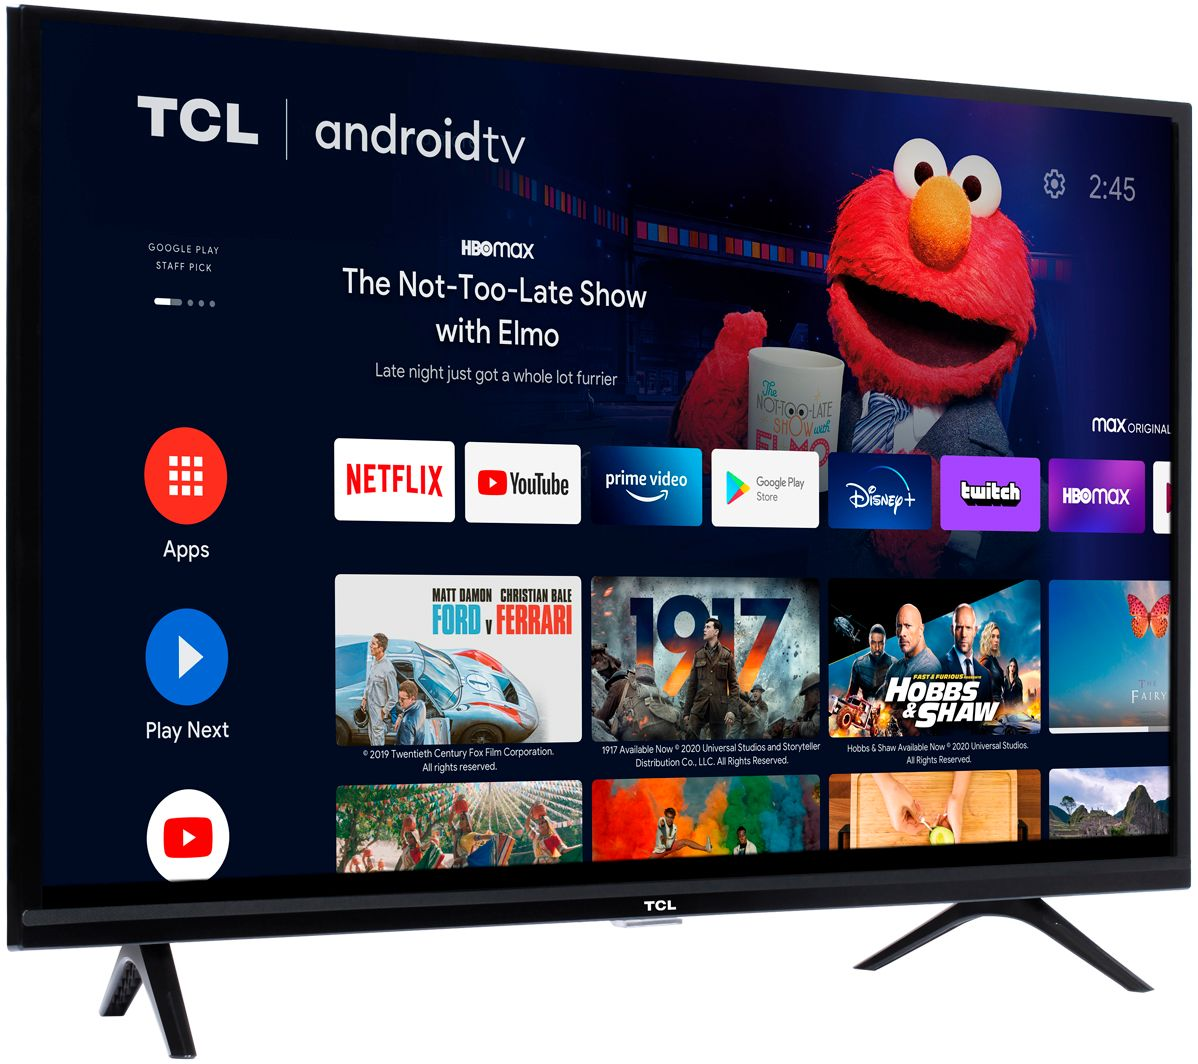 Which One You Should Buy? Smartcast or Smart TV